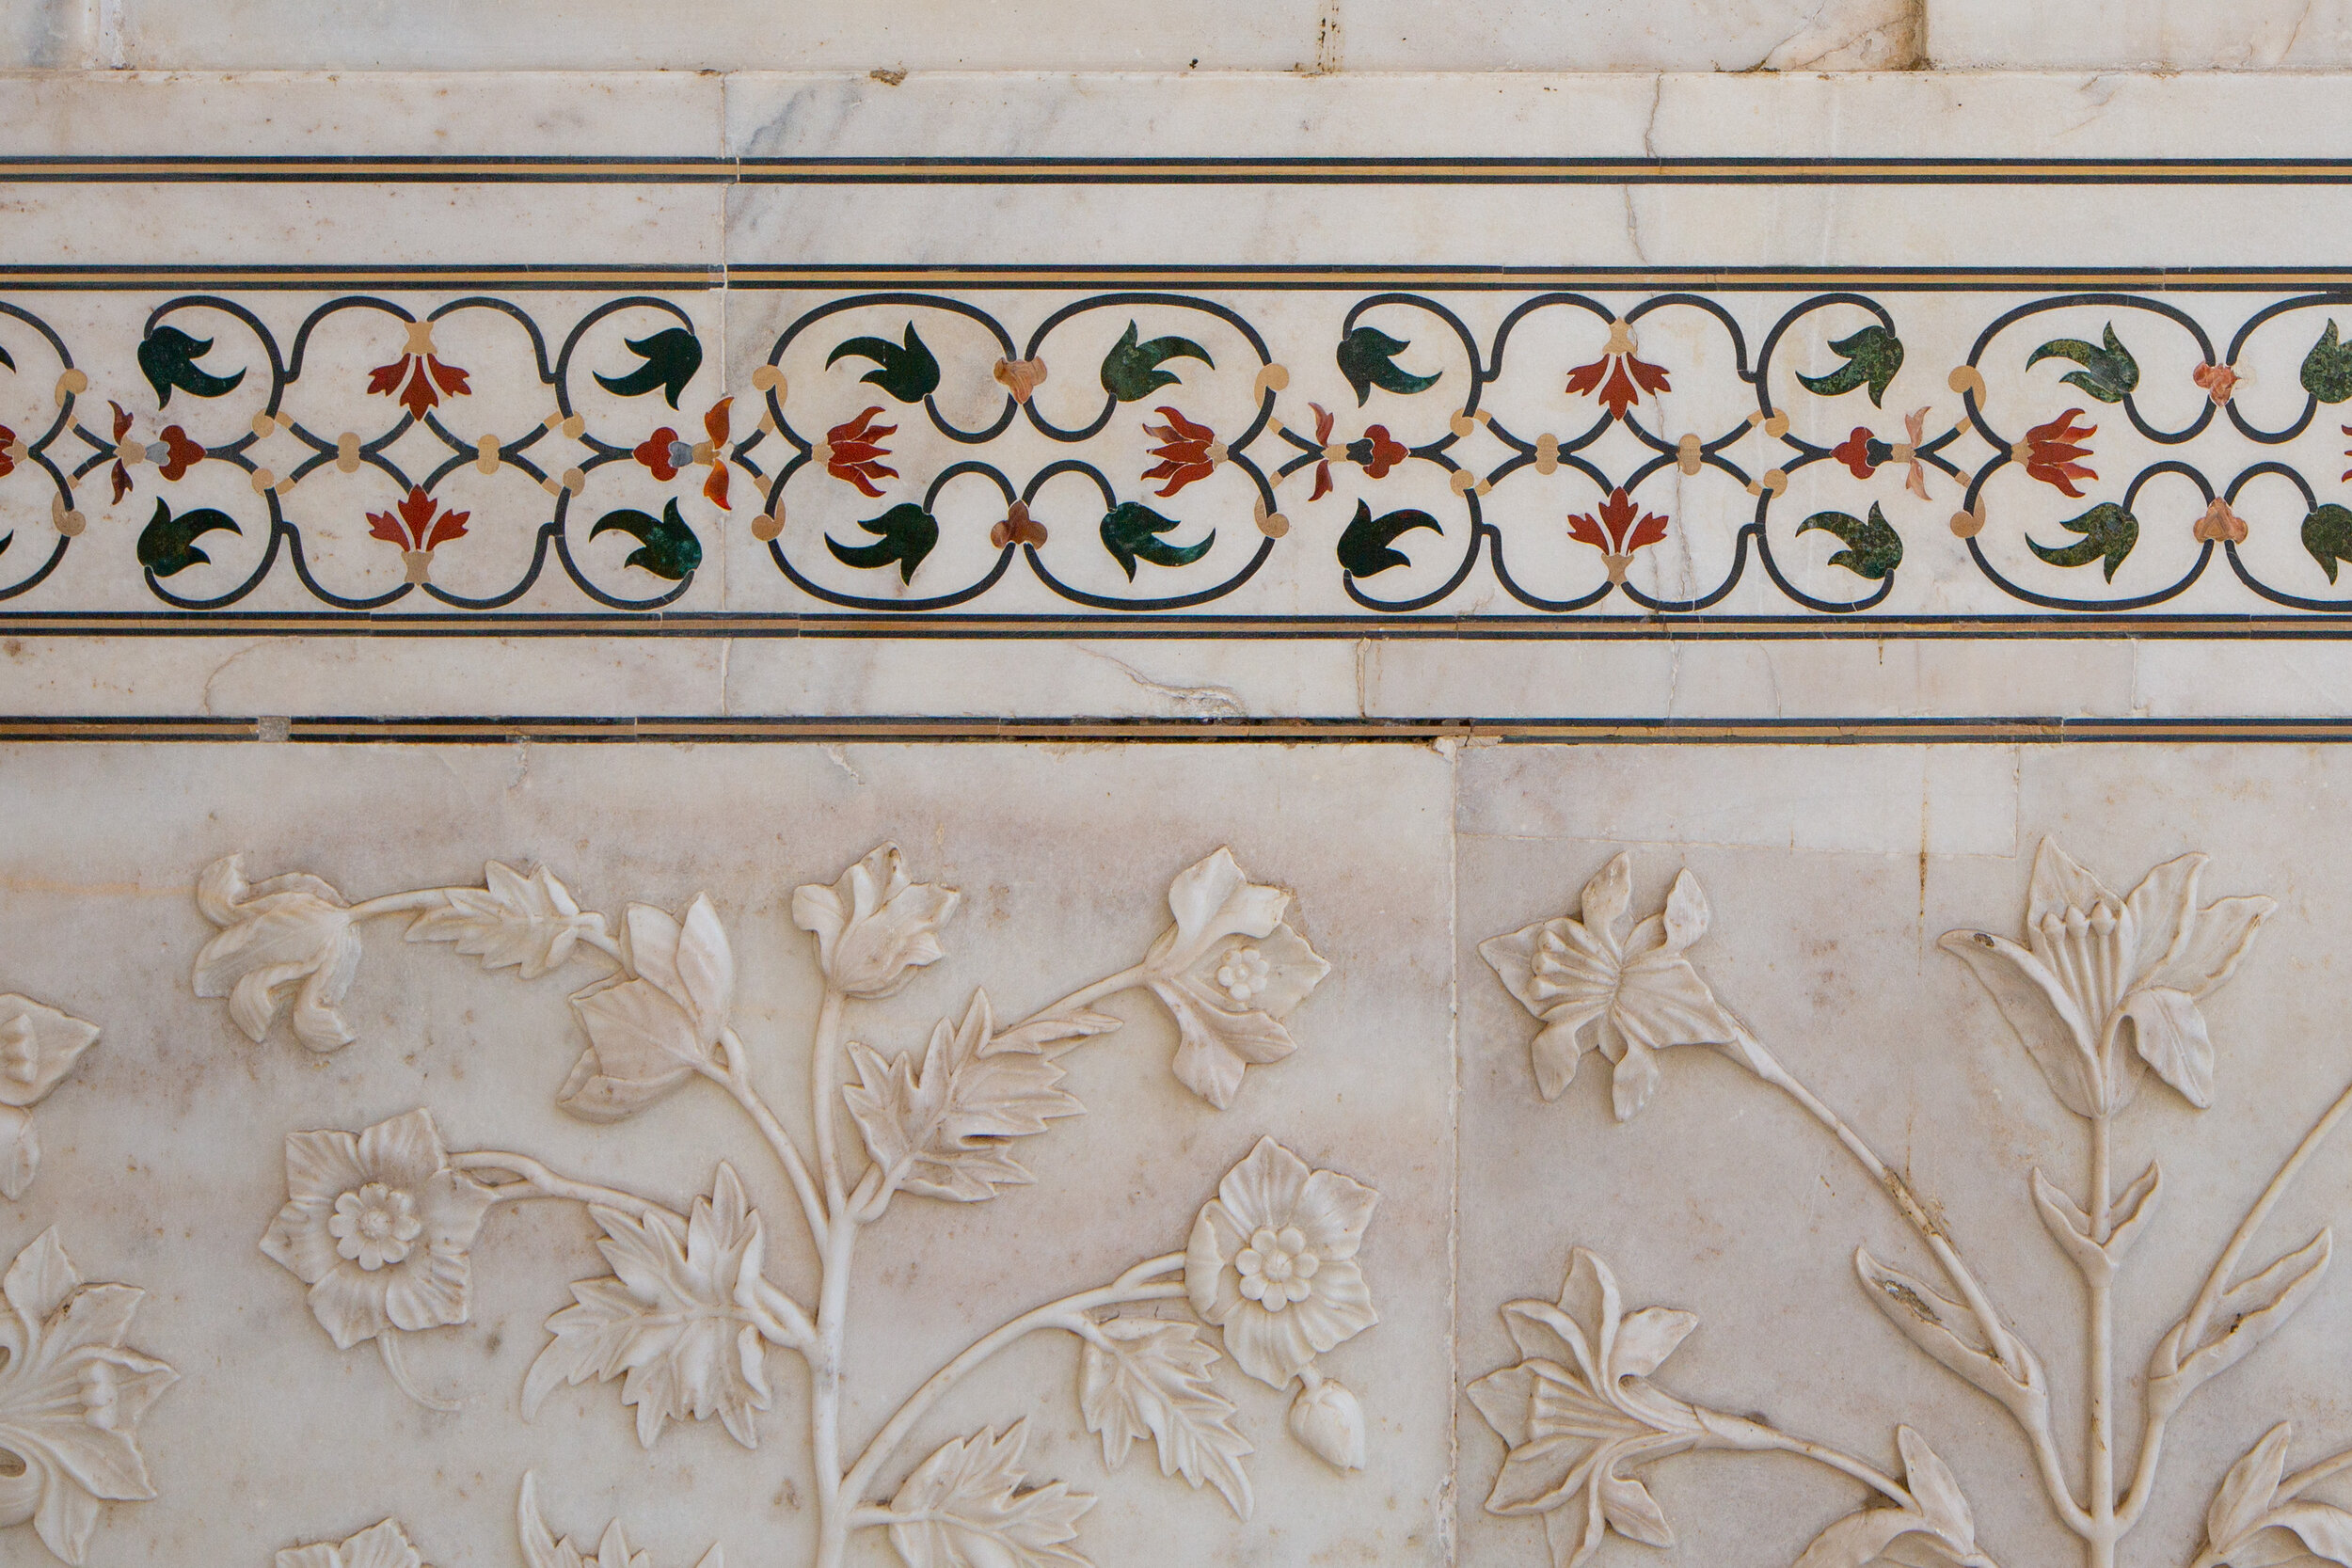 Detail of the inlaid marble of the Taj Mahal